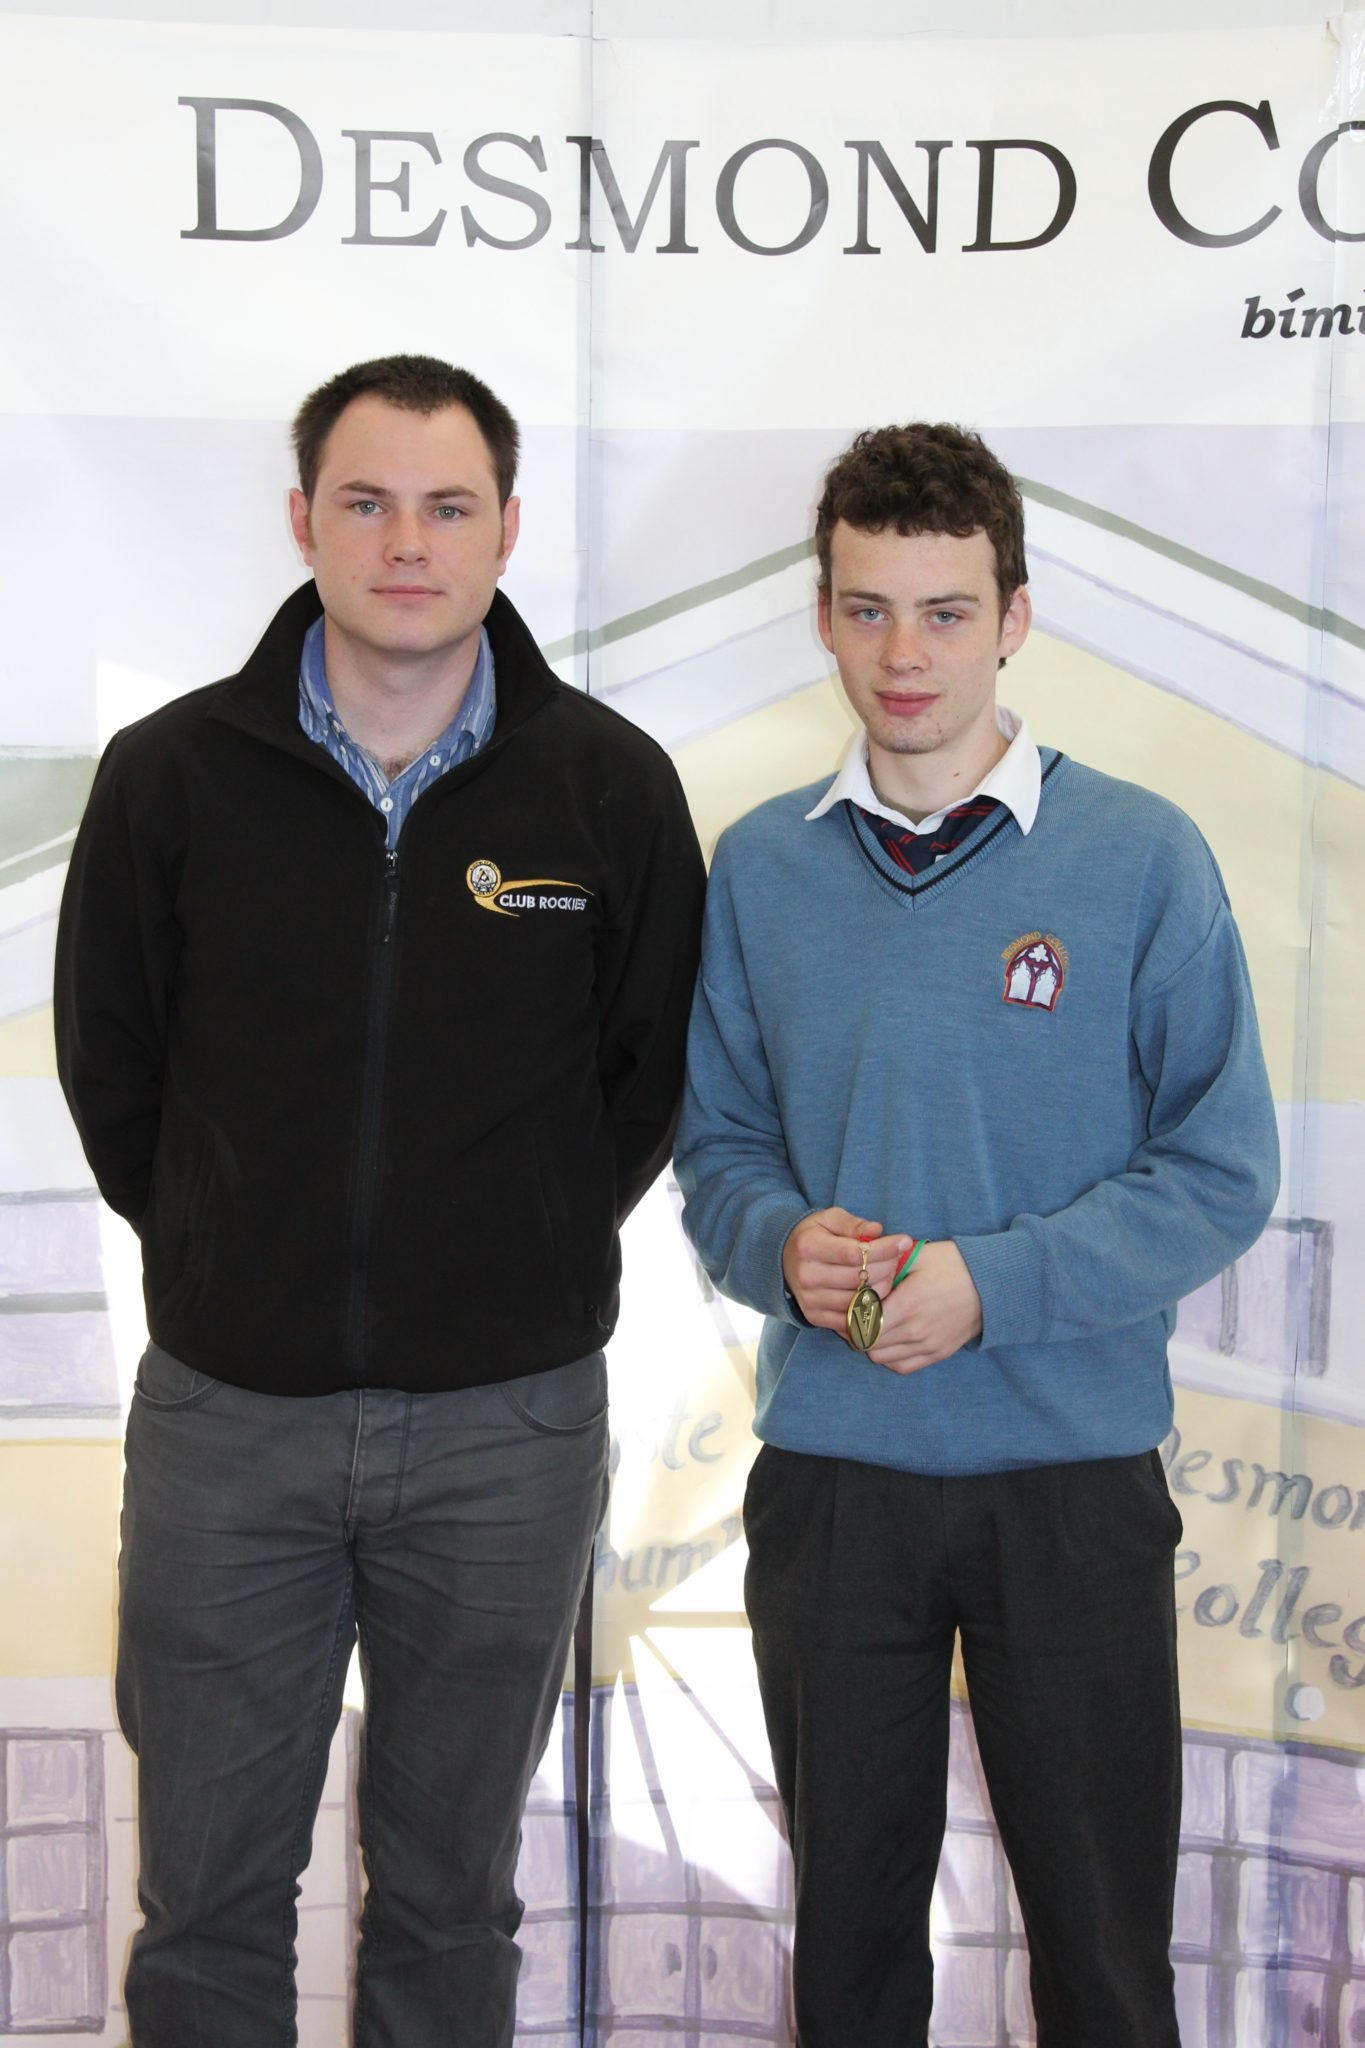 Desmond College Student Awards: May 2015: SPORTS AWARDS 2nd year : Mr King with Paul Moroney